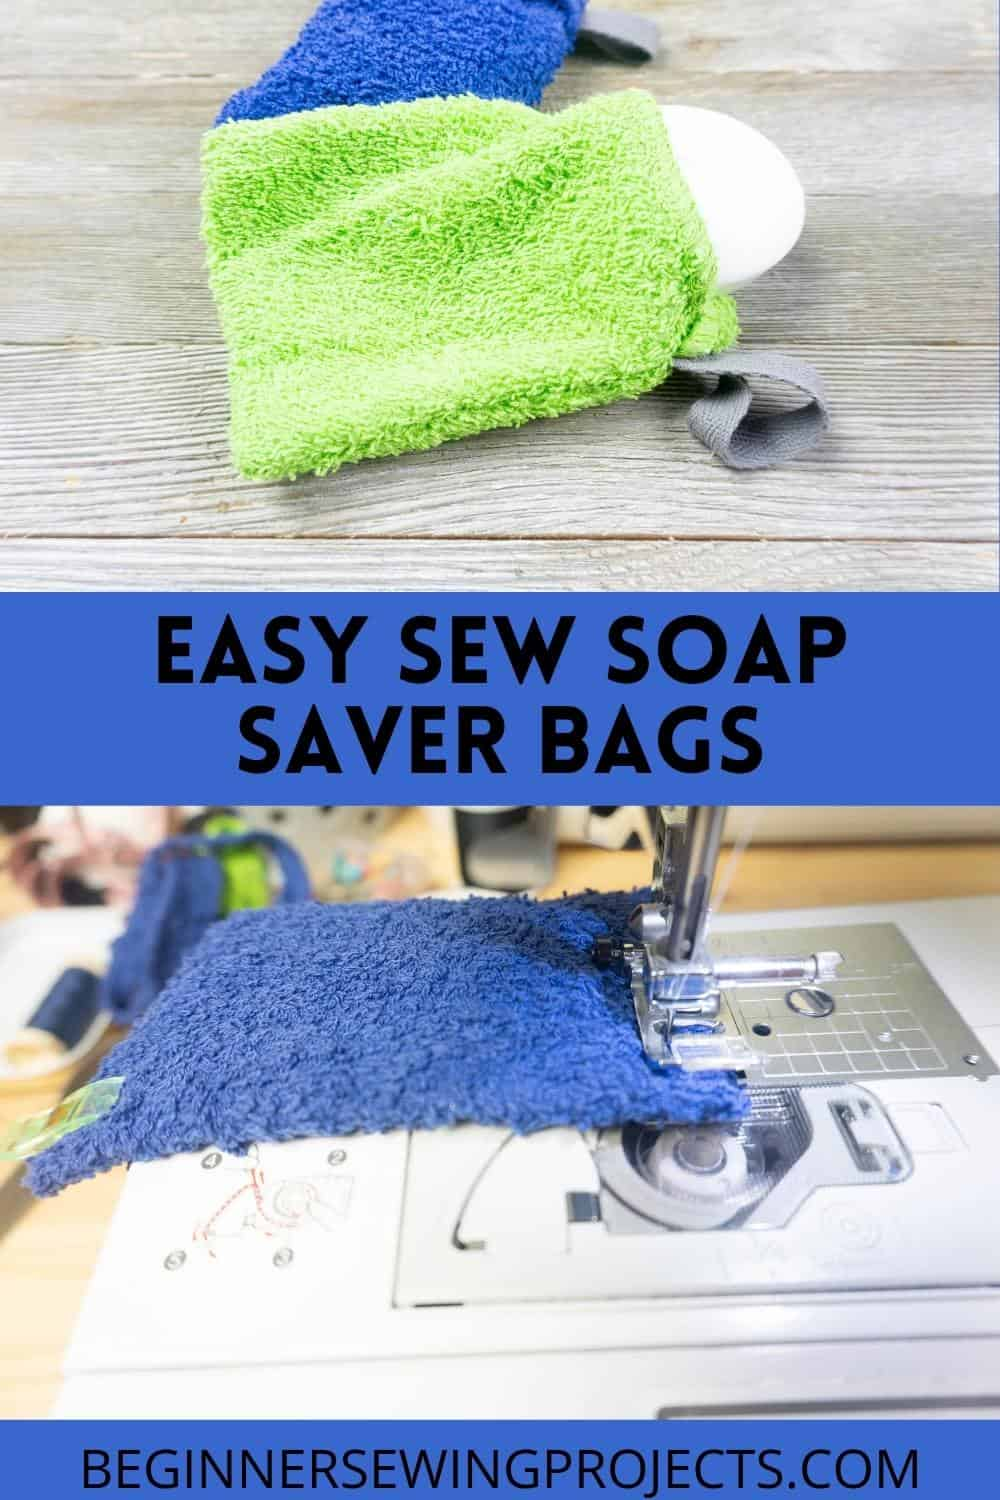 Easy Sew Soap Saver Bags